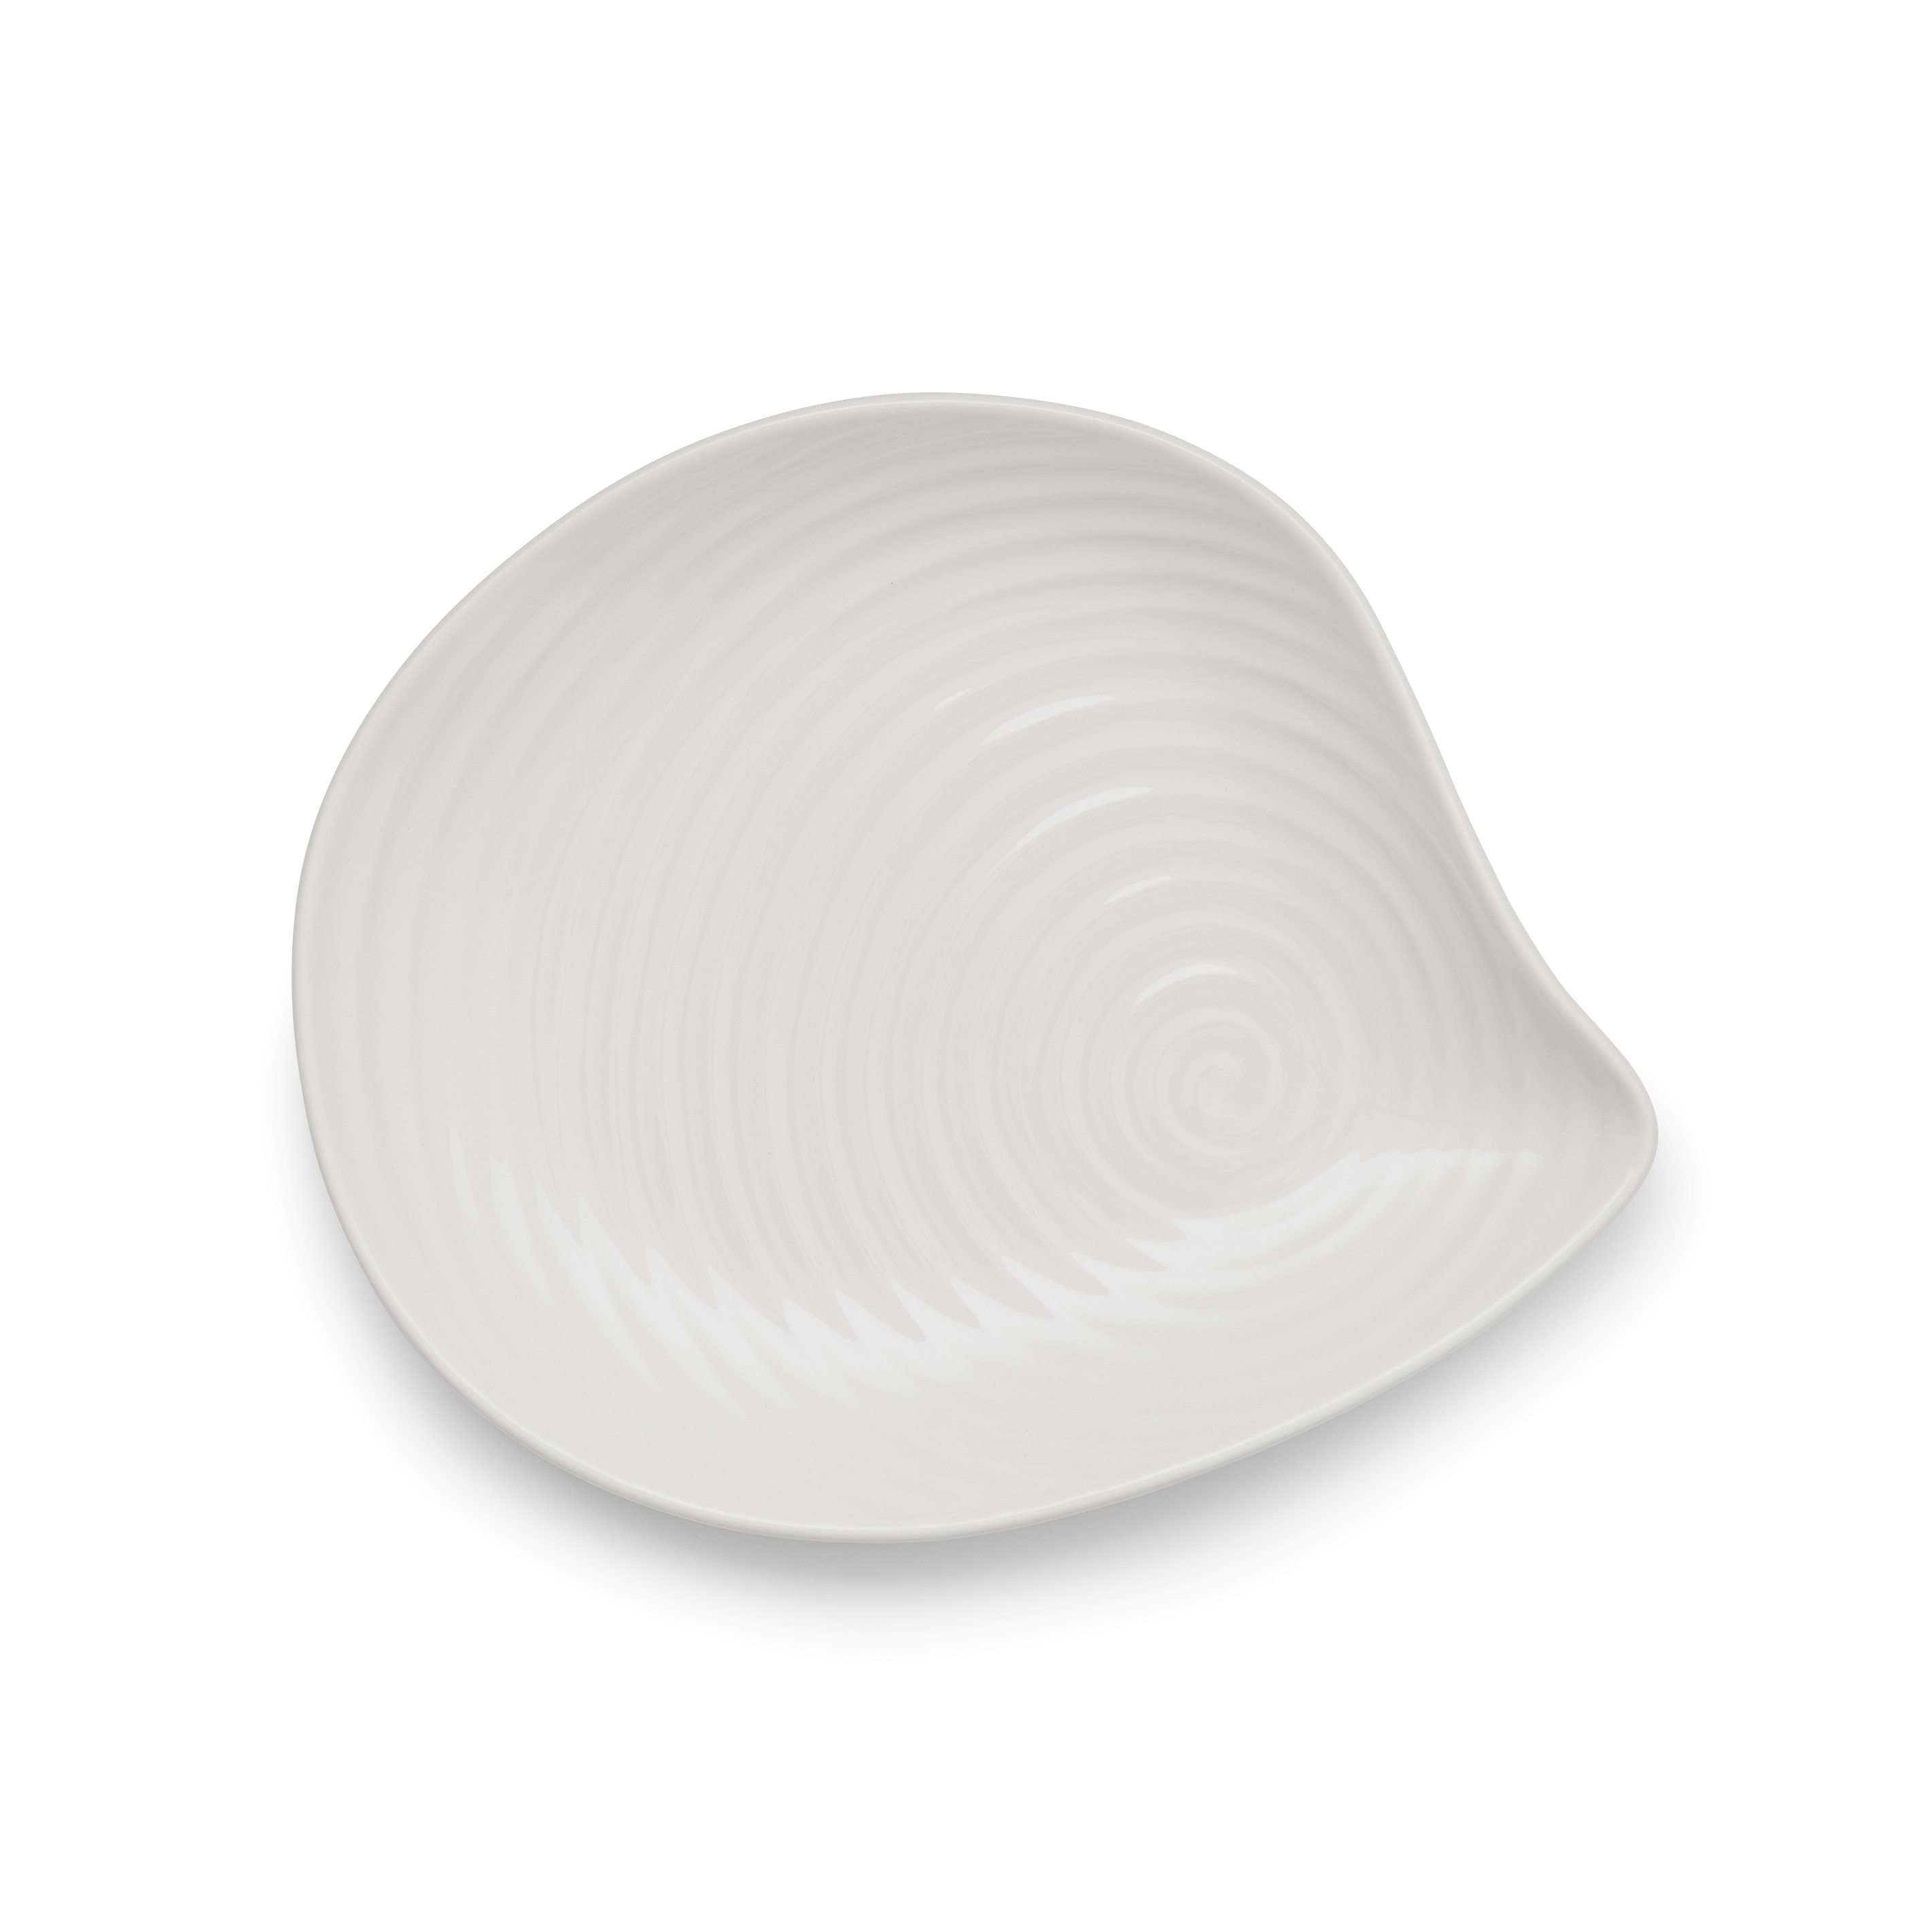 Sophie Conran for Portmeirion 8.75 Inch White Shell Shaped Serving Plate image number 1